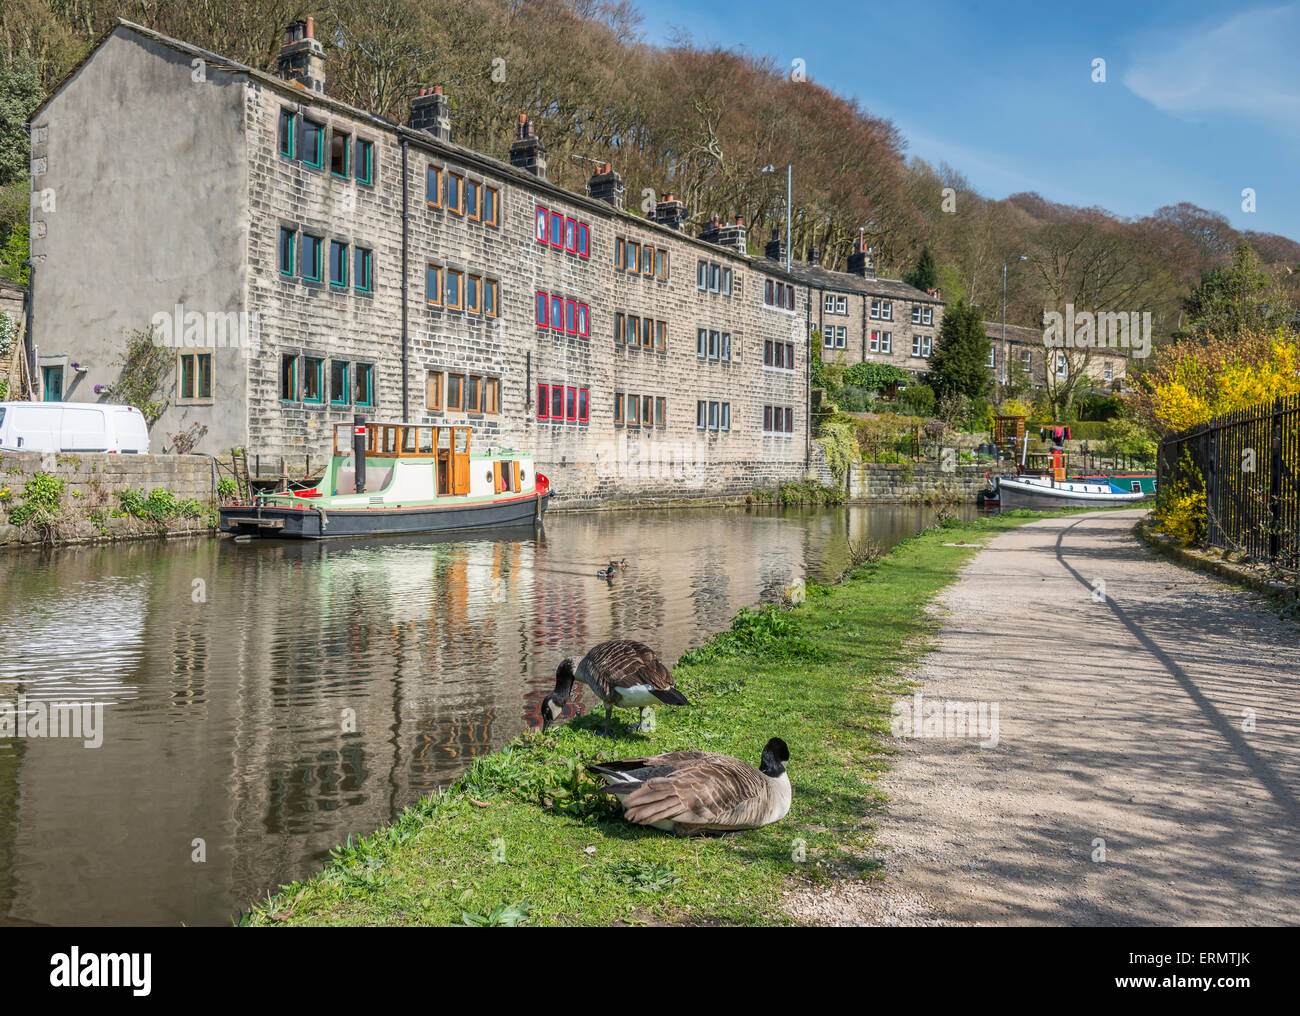 The pretty tourist town of Hebden Bridge in the South Pennine region of West Yorkshire showing steep terraced houses - Stock Image